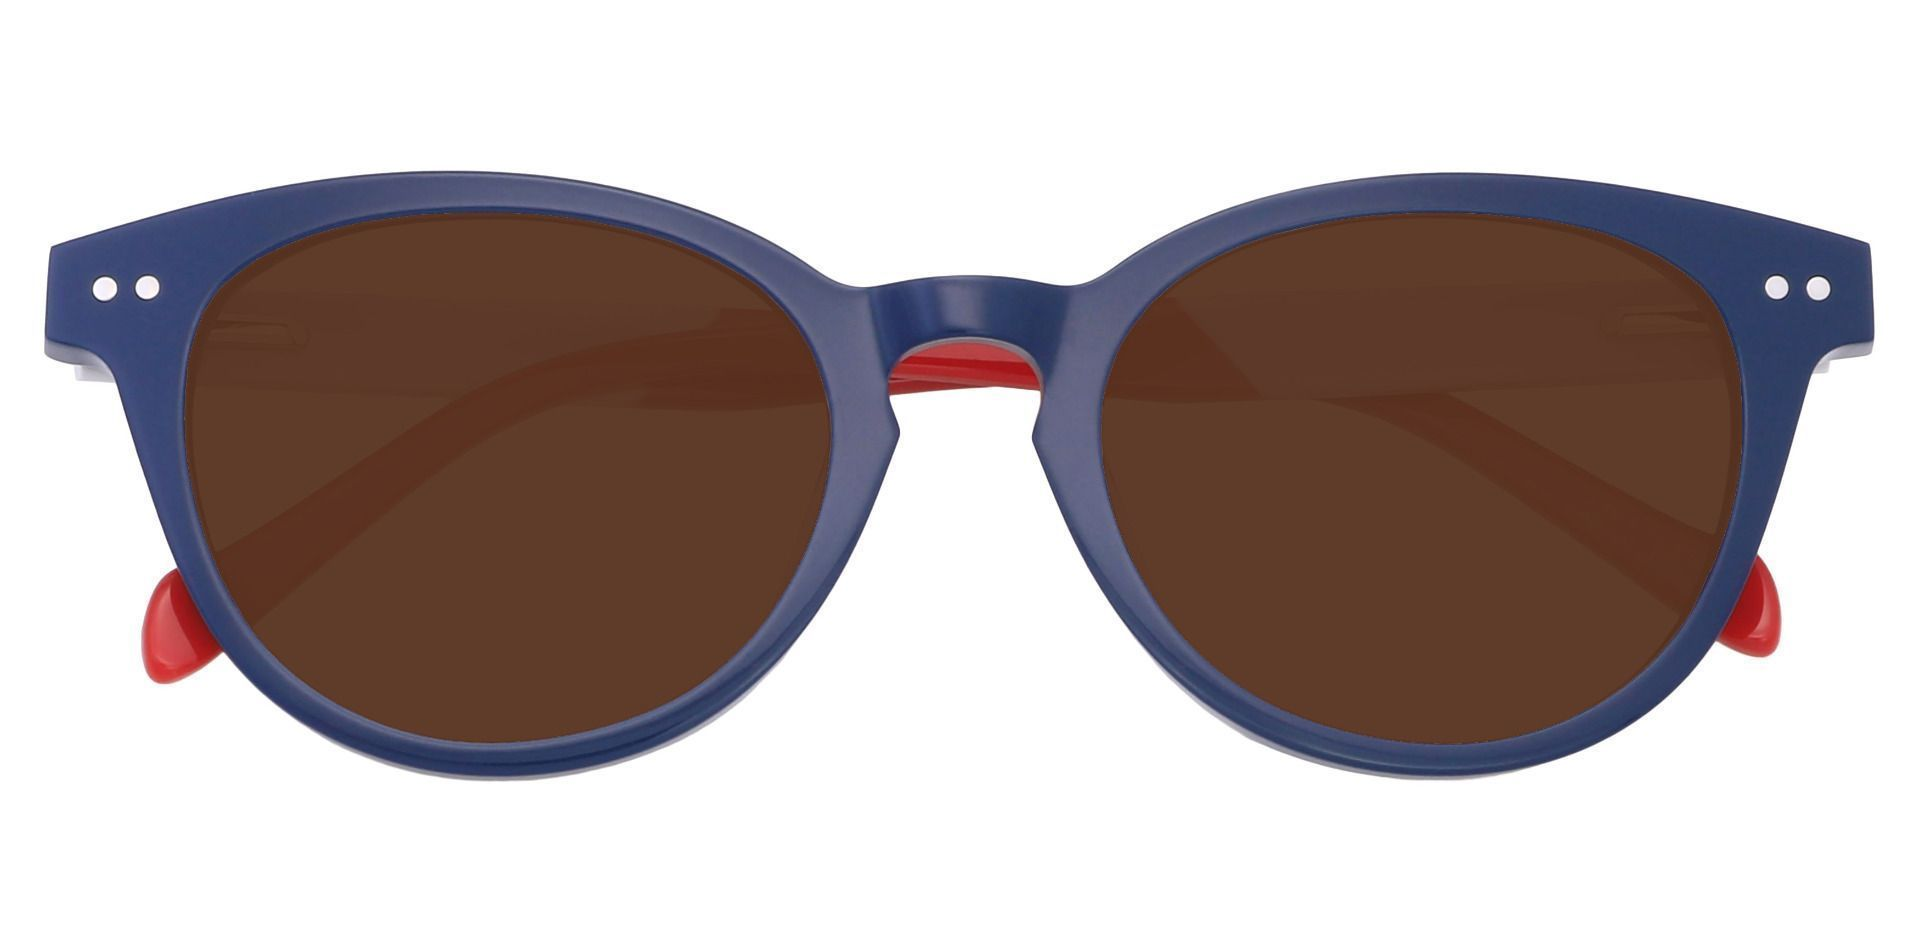 Common Oval Reading Sunglasses - Blue Frame With Brown Lenses